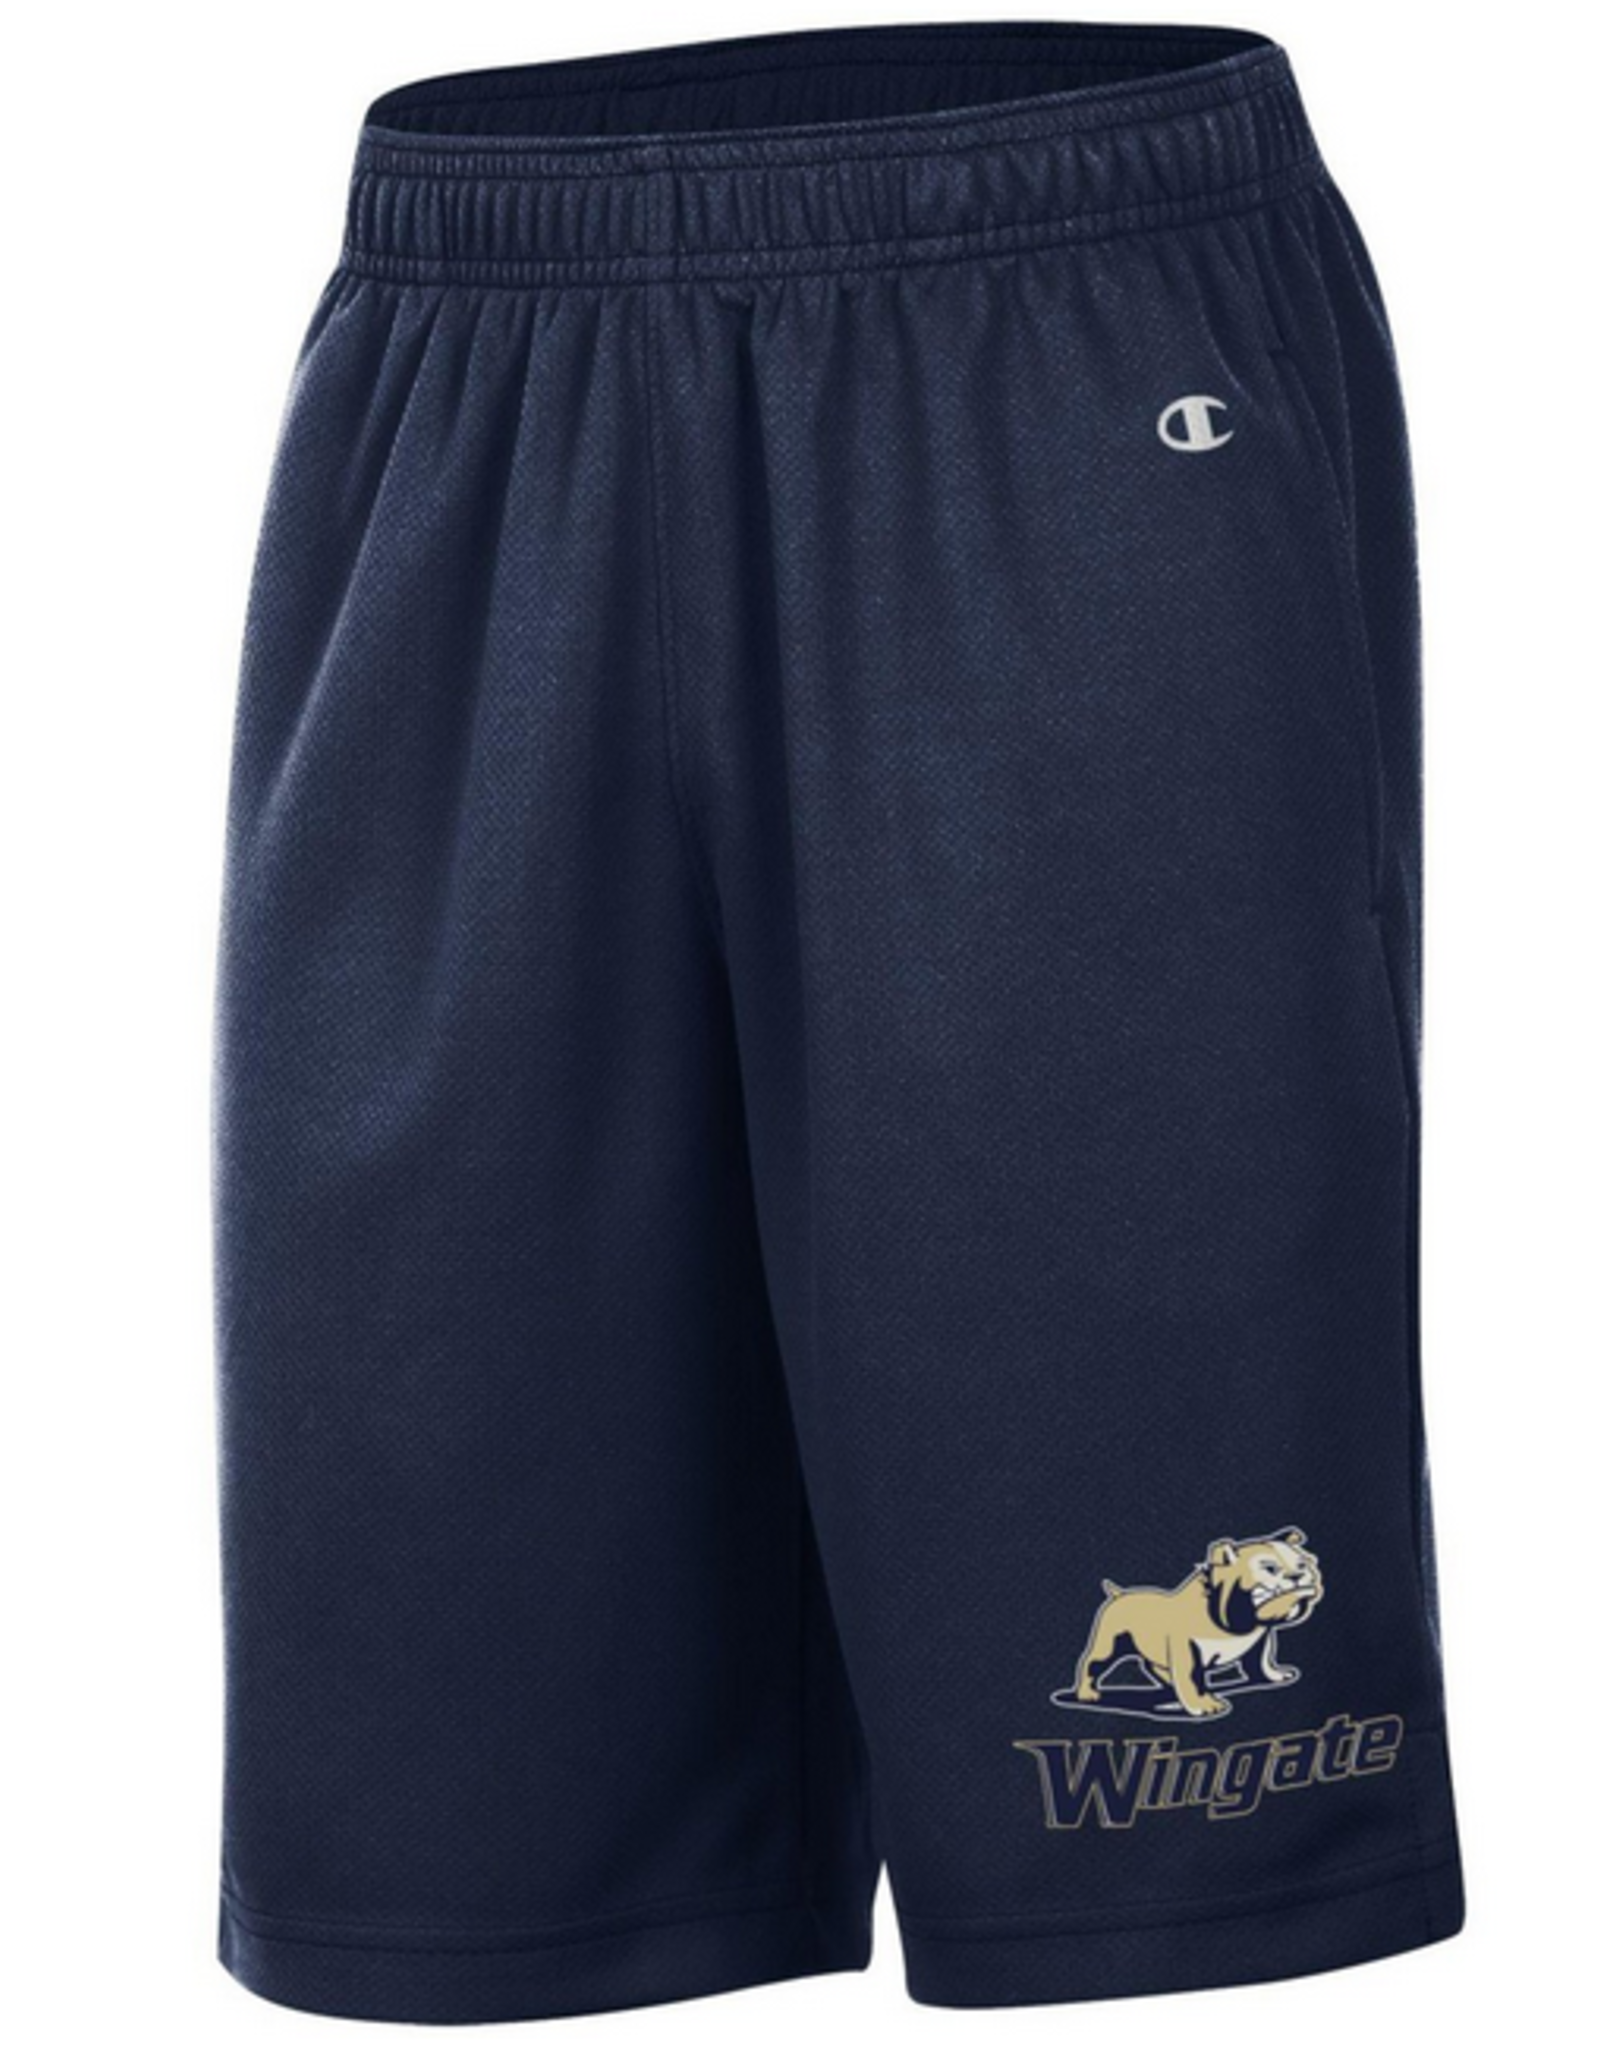 Champion Youth Navy Mesh Shorts